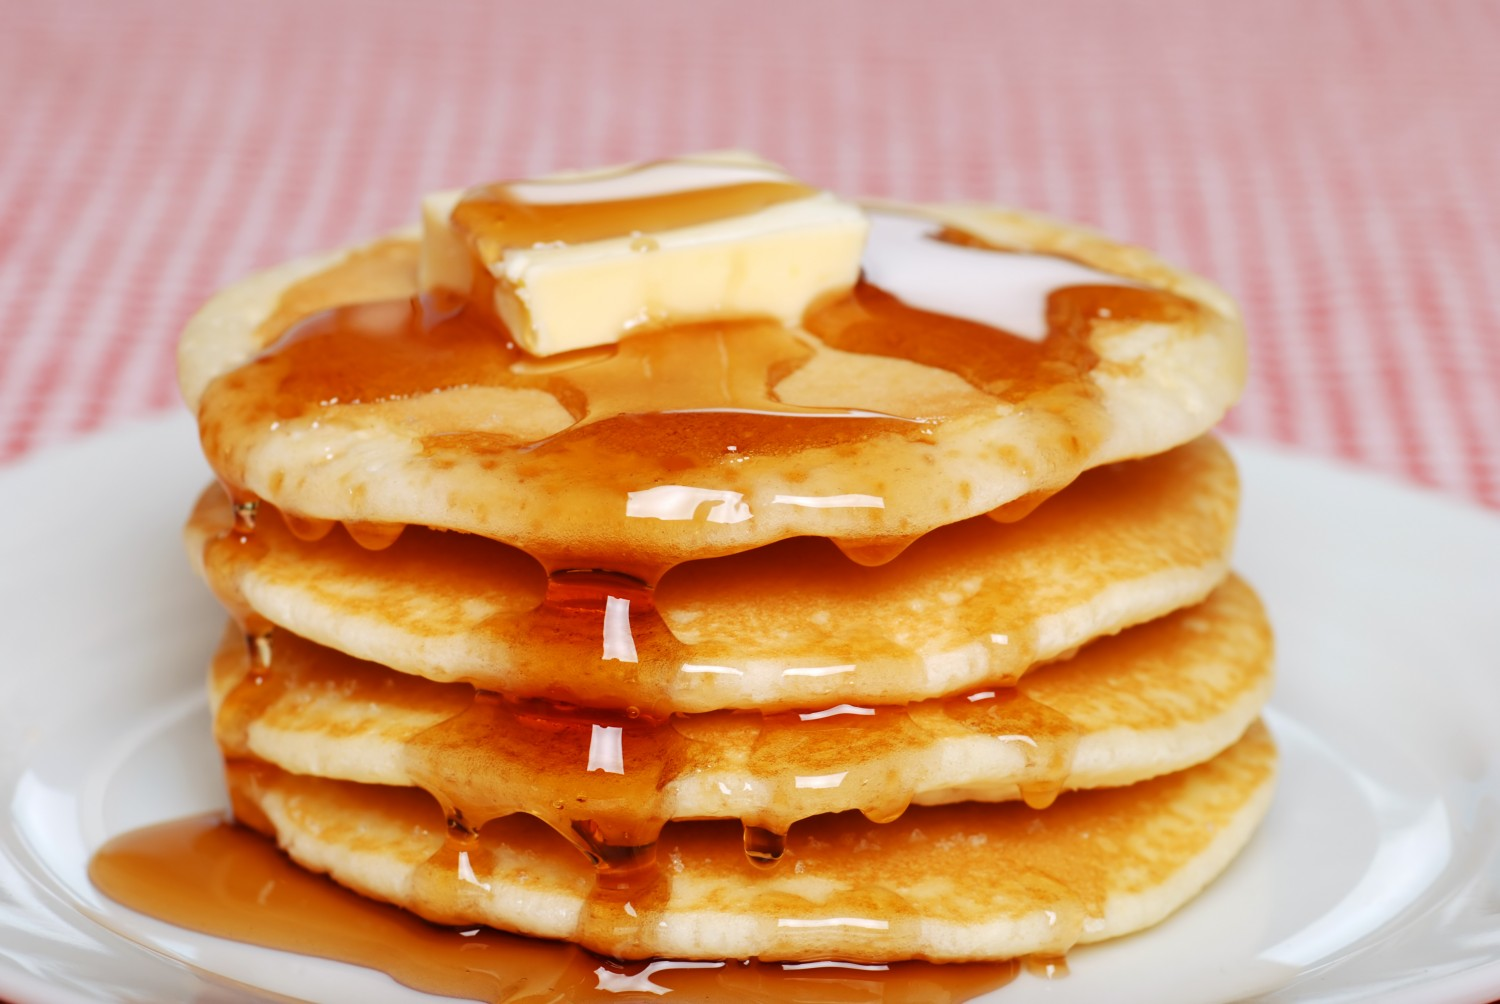 Fullsize Of All You Can Eat Pancakes